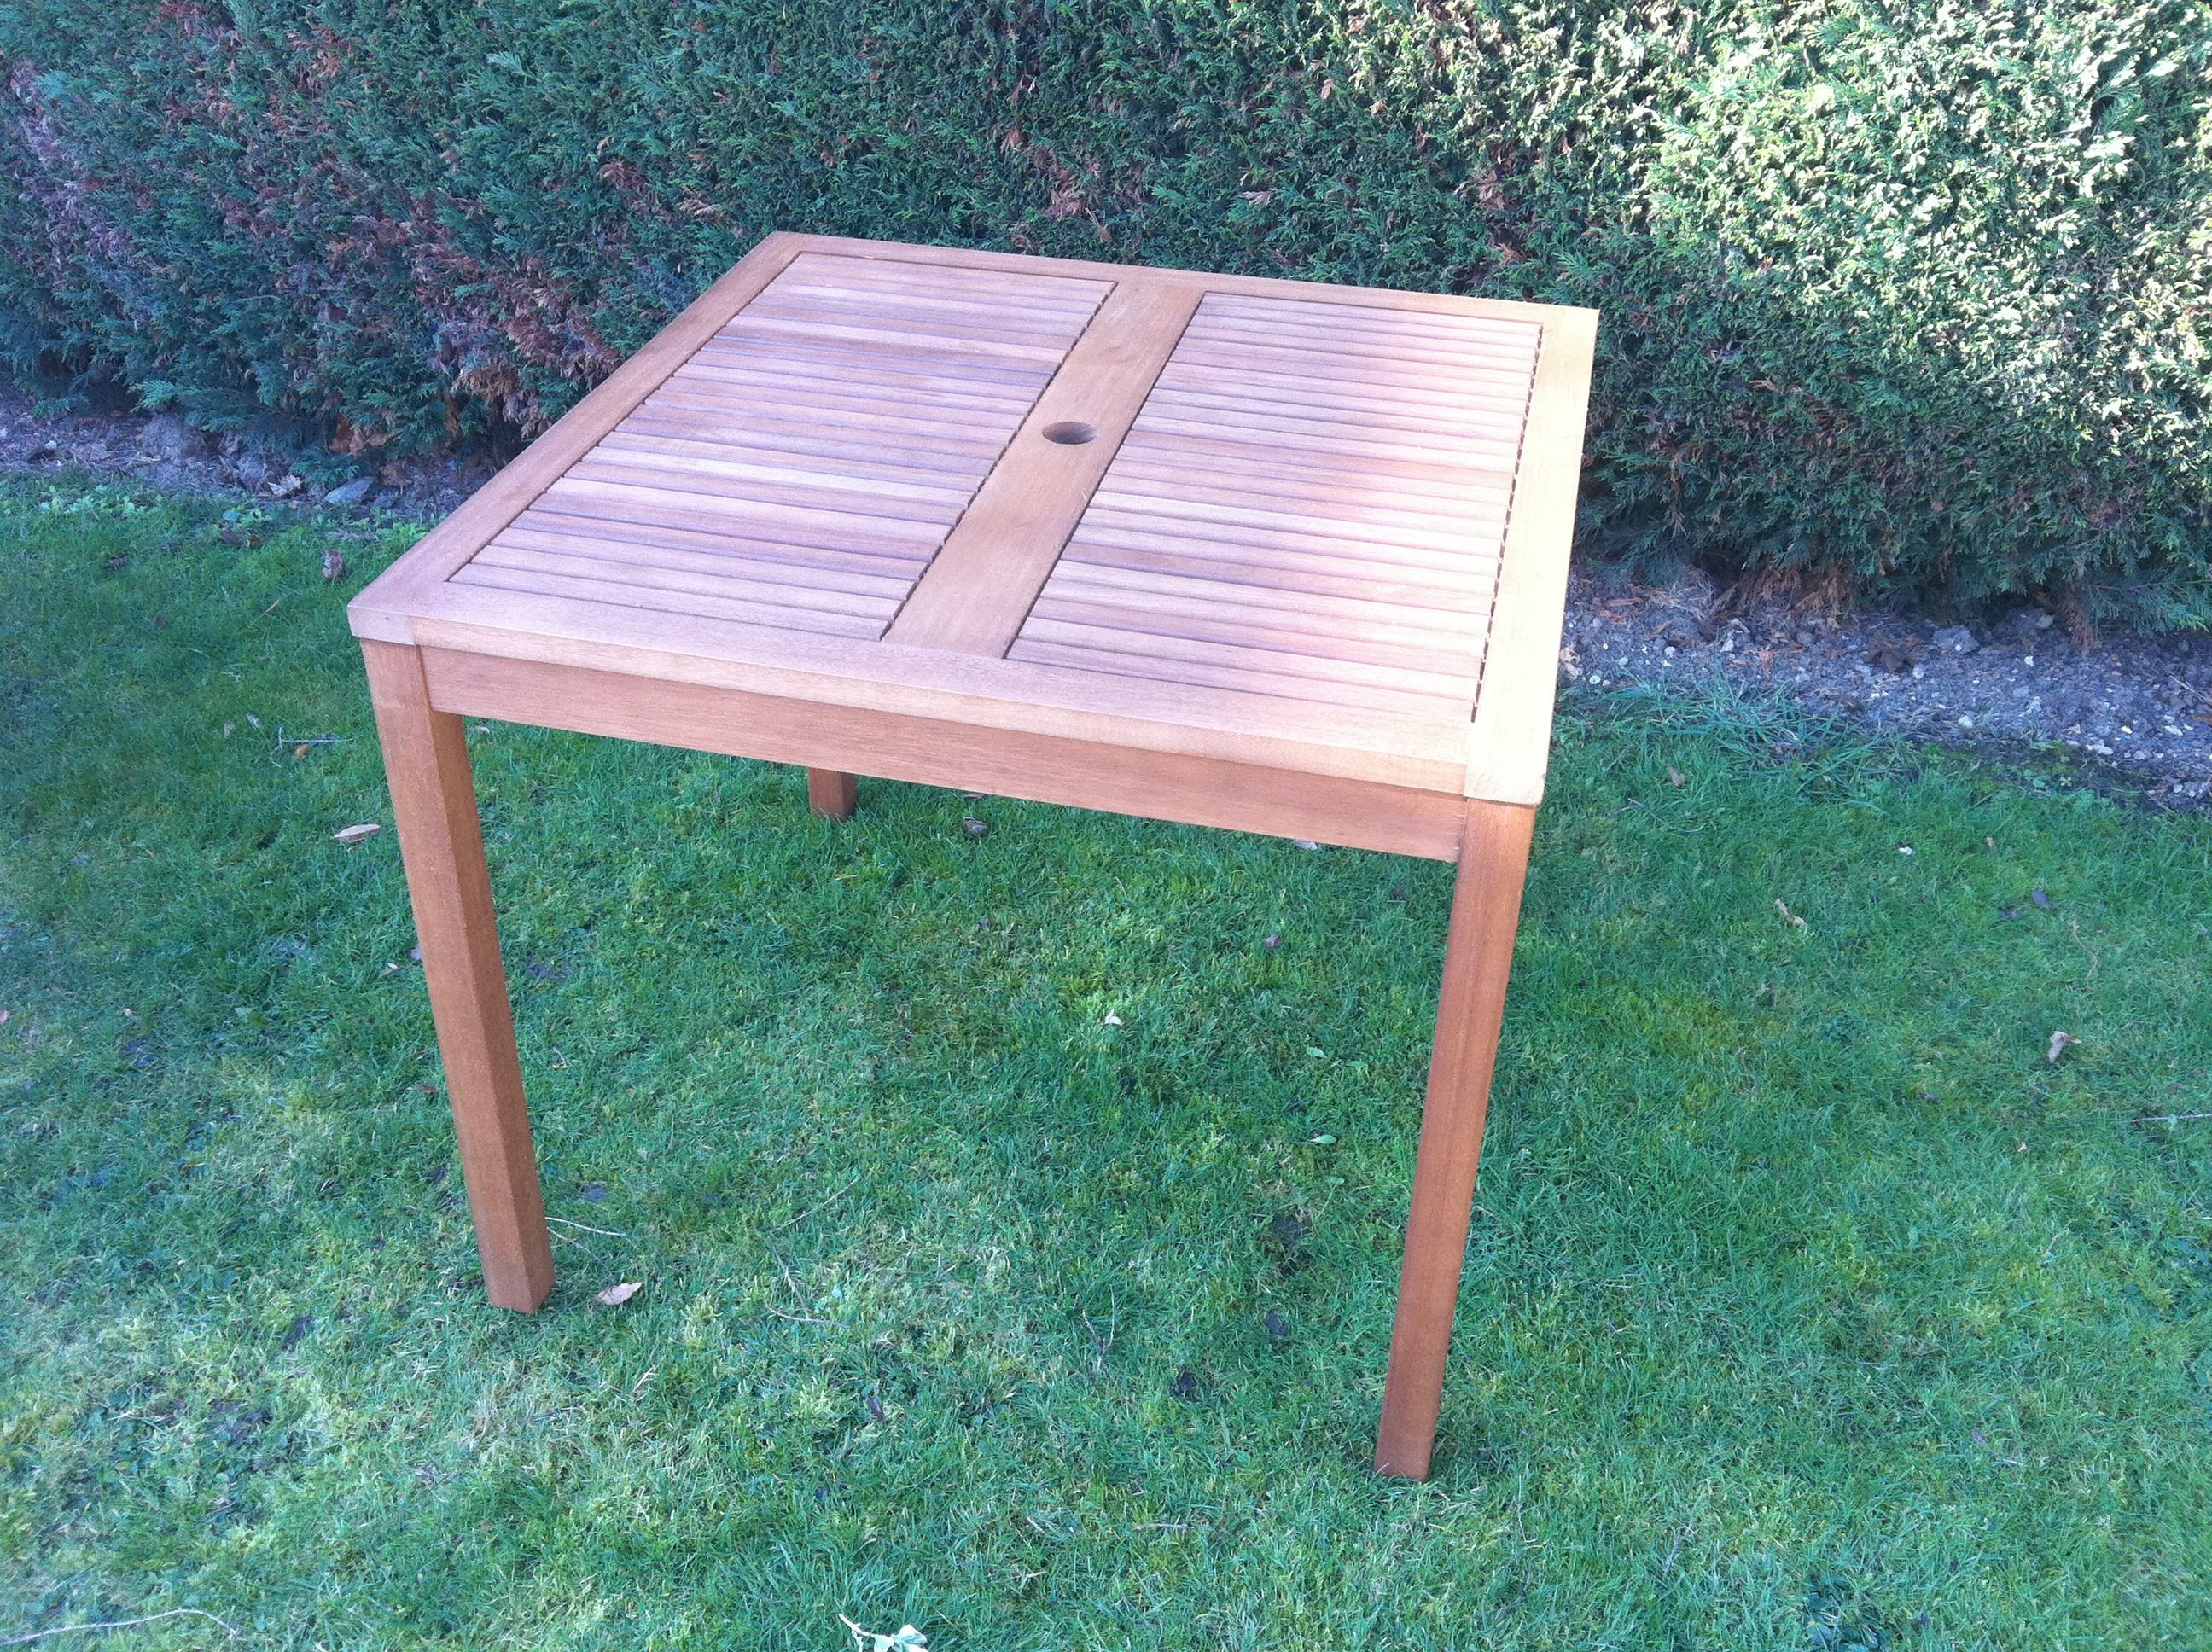 Fsc Solid Eucalyptus Wood 90cm Square Patio Table Outdoor